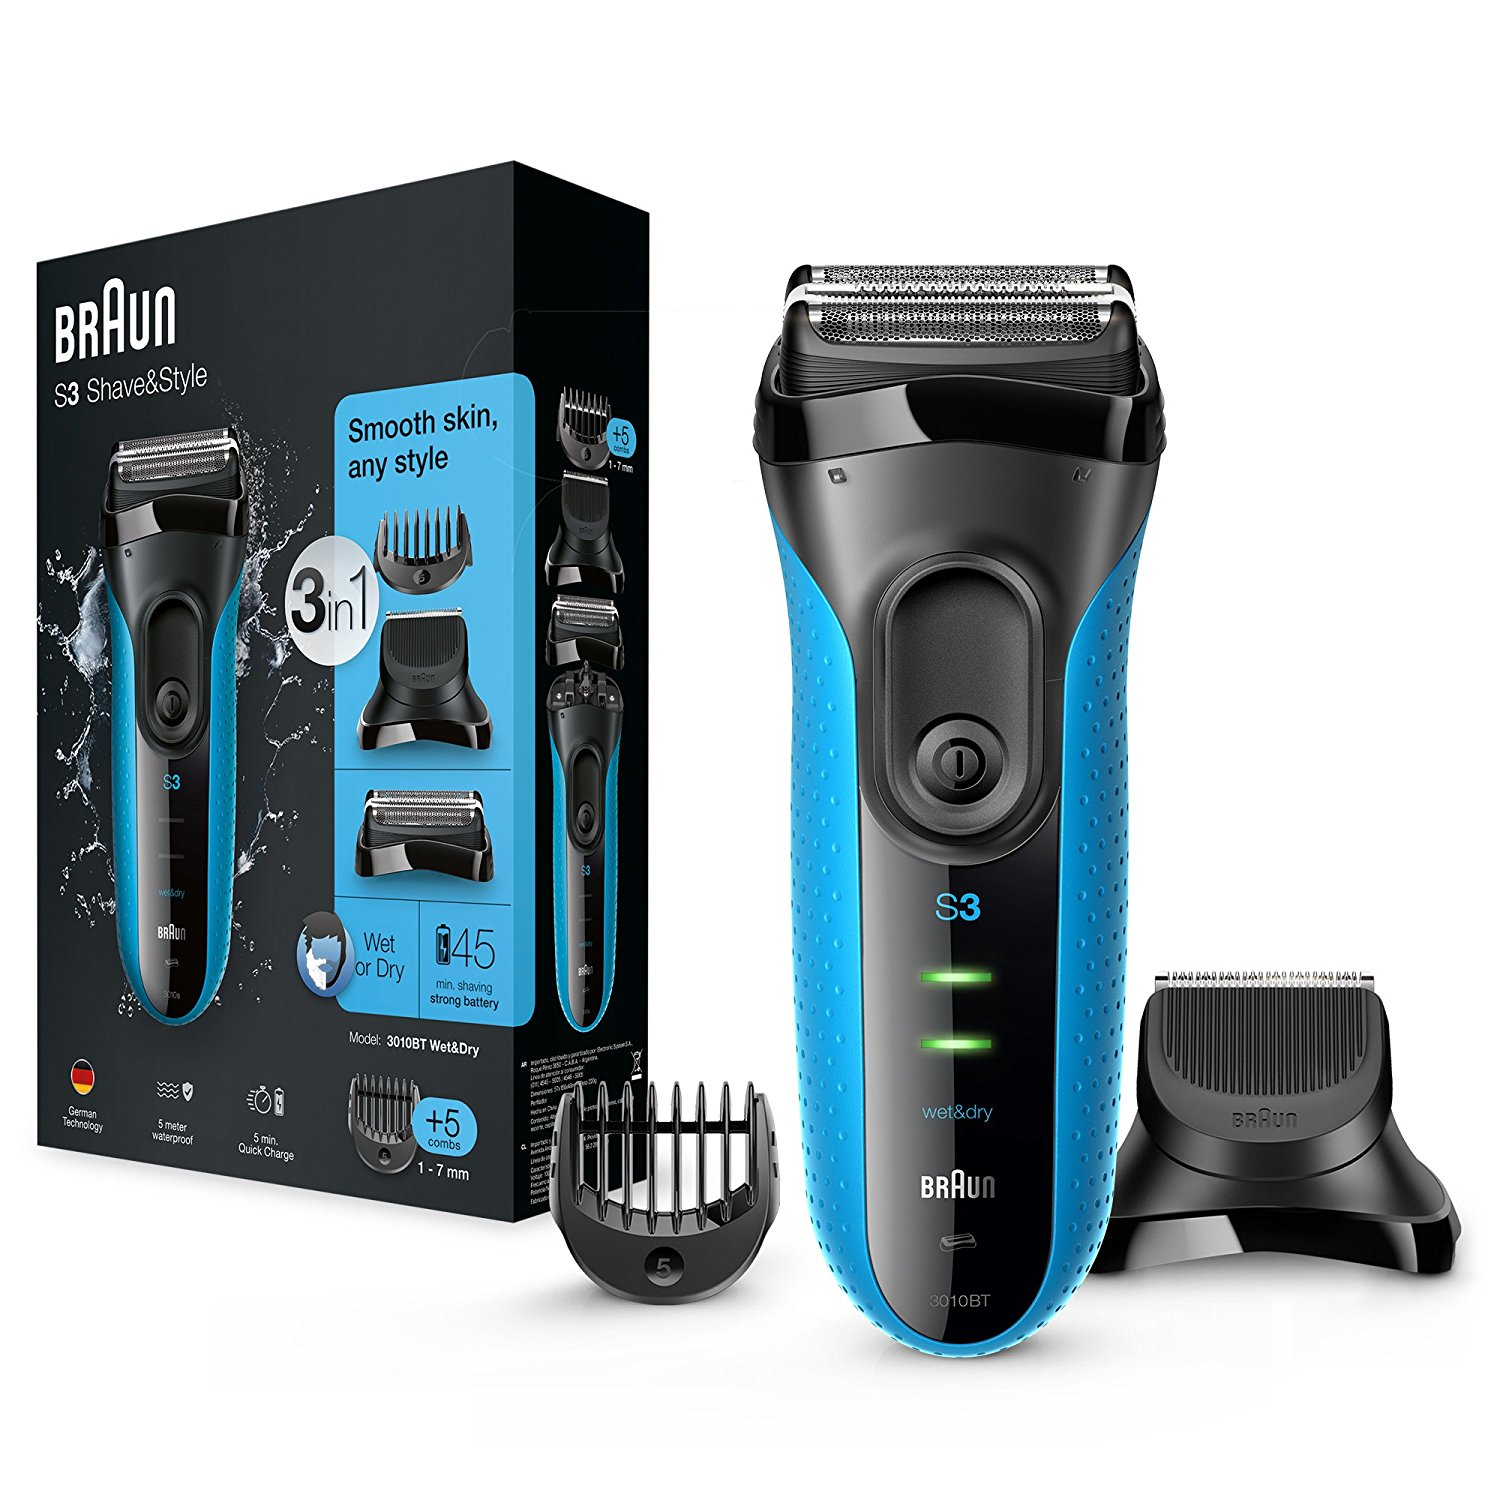 Braun 3010BT Series 3 Shave & Style Mens Shaver|Wet & Dry|Electric Razor Trimmer